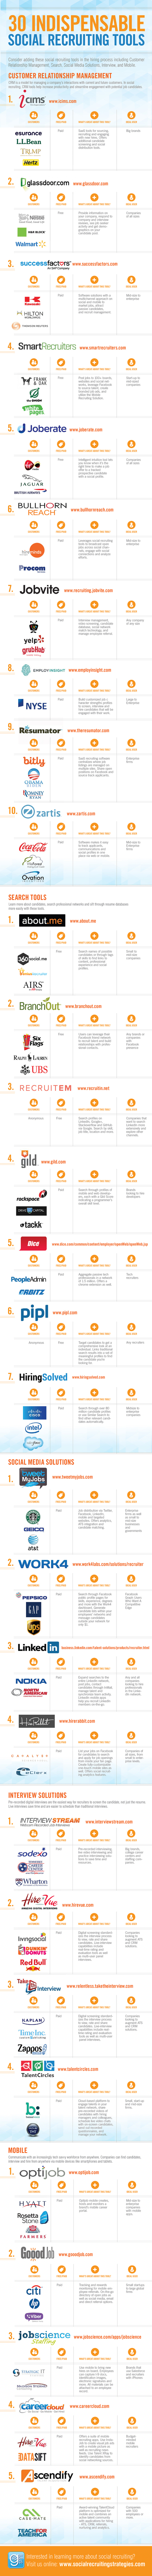 Top 30 Social Recruiting Tools [INFOGRAPHIC] | Job Advice - on Getting Hired | Scoop.it